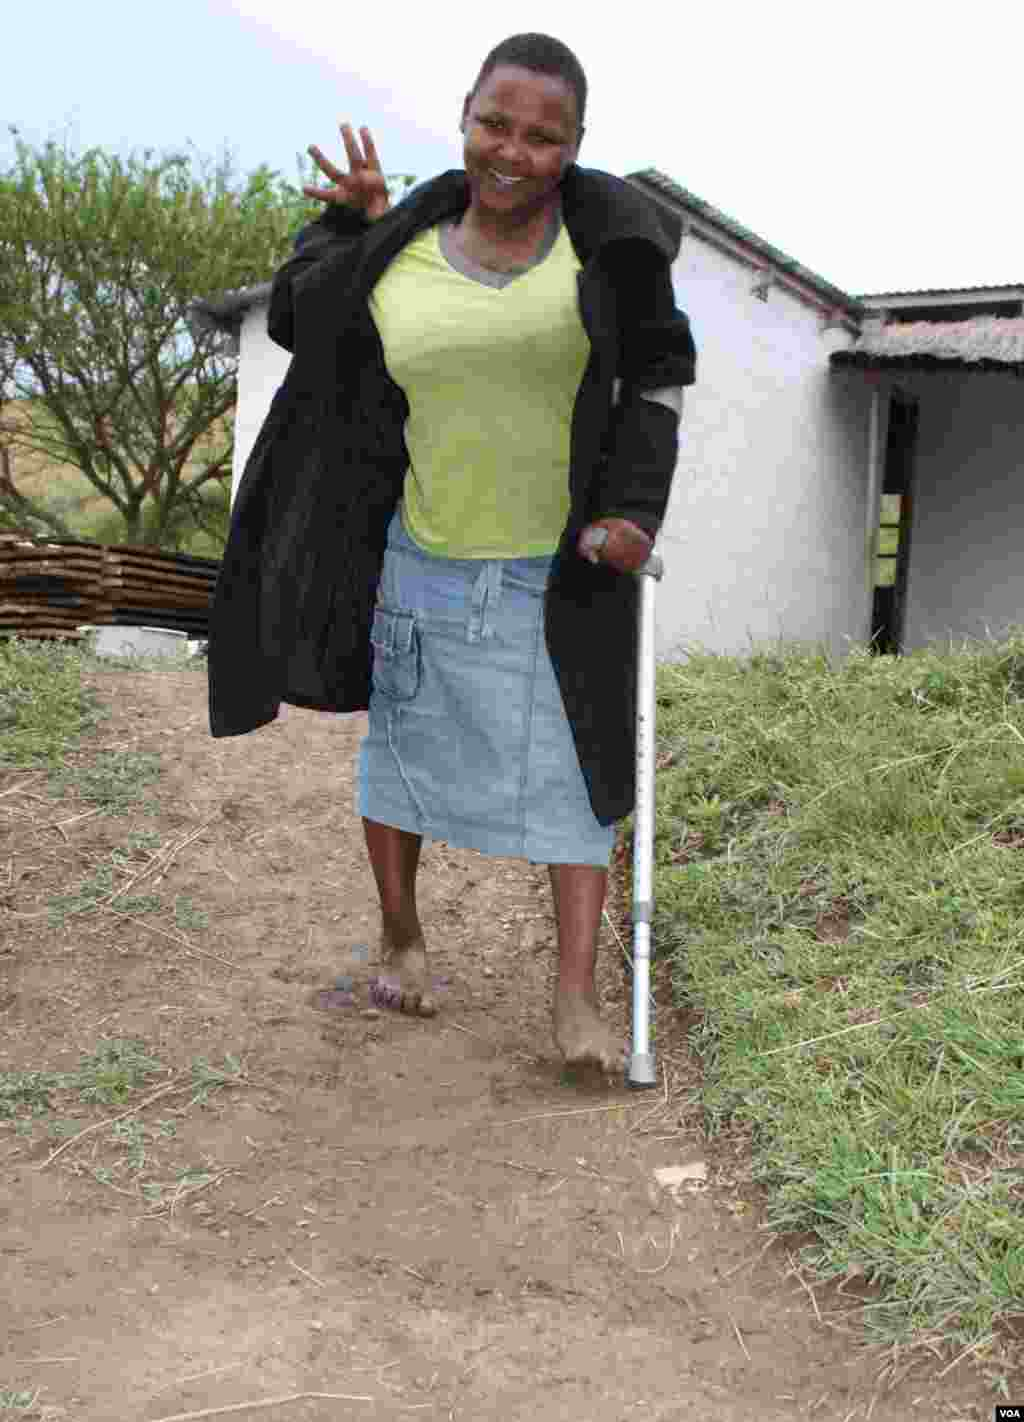 Lumka must walk with the aid of a crutch, but she often falls and hurts herself (VOA/ D. Taylor)